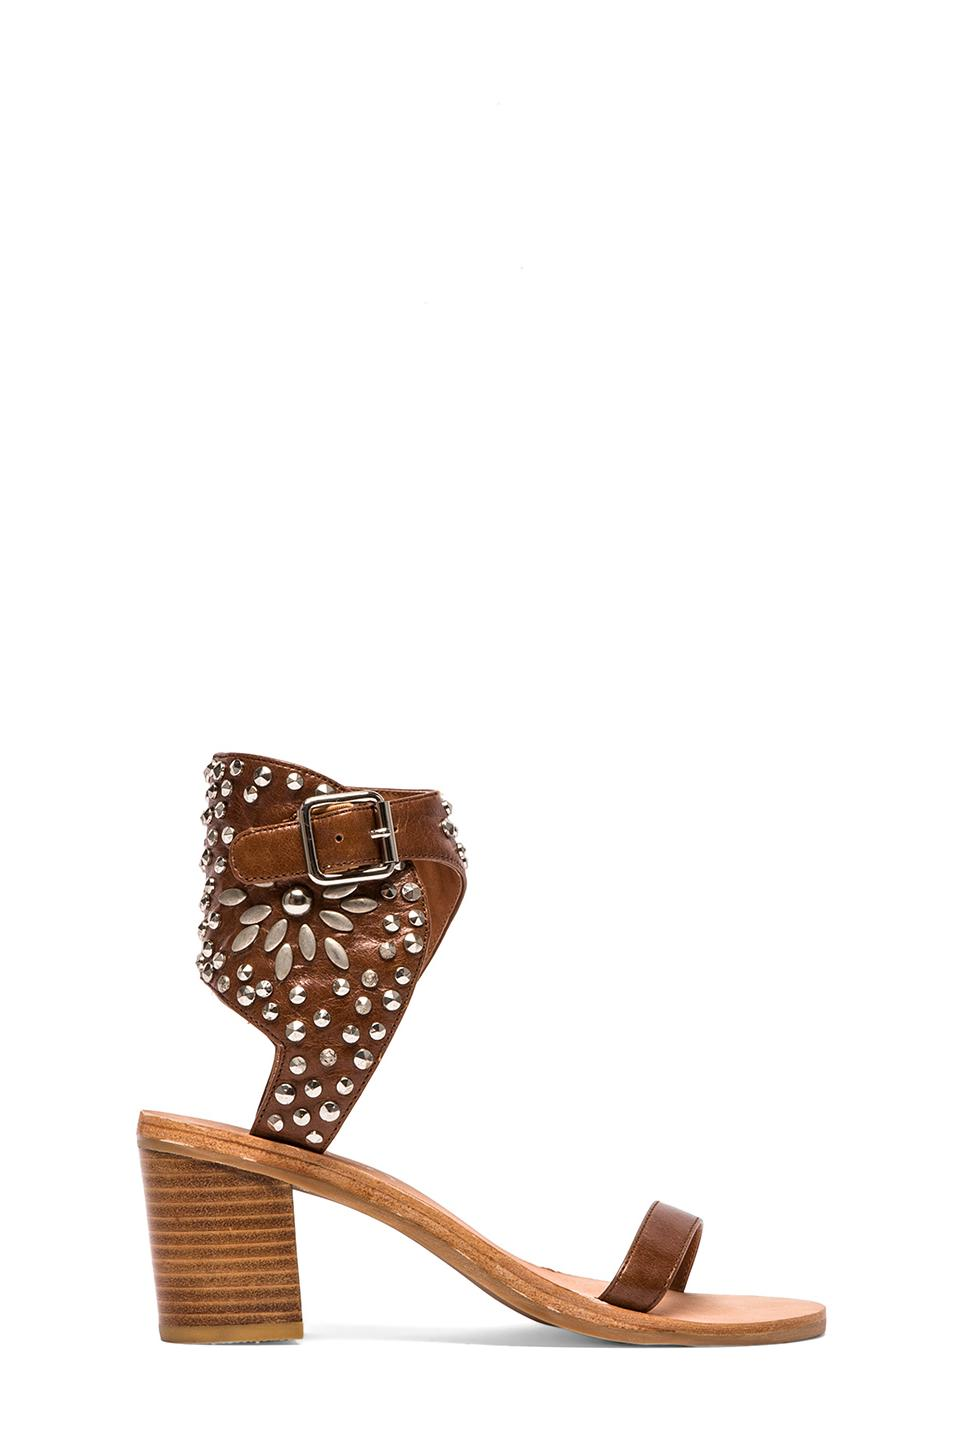 Jeffrey Campbell Des Moines Sandal in Tan & Silver from REVOLVEclothing.com